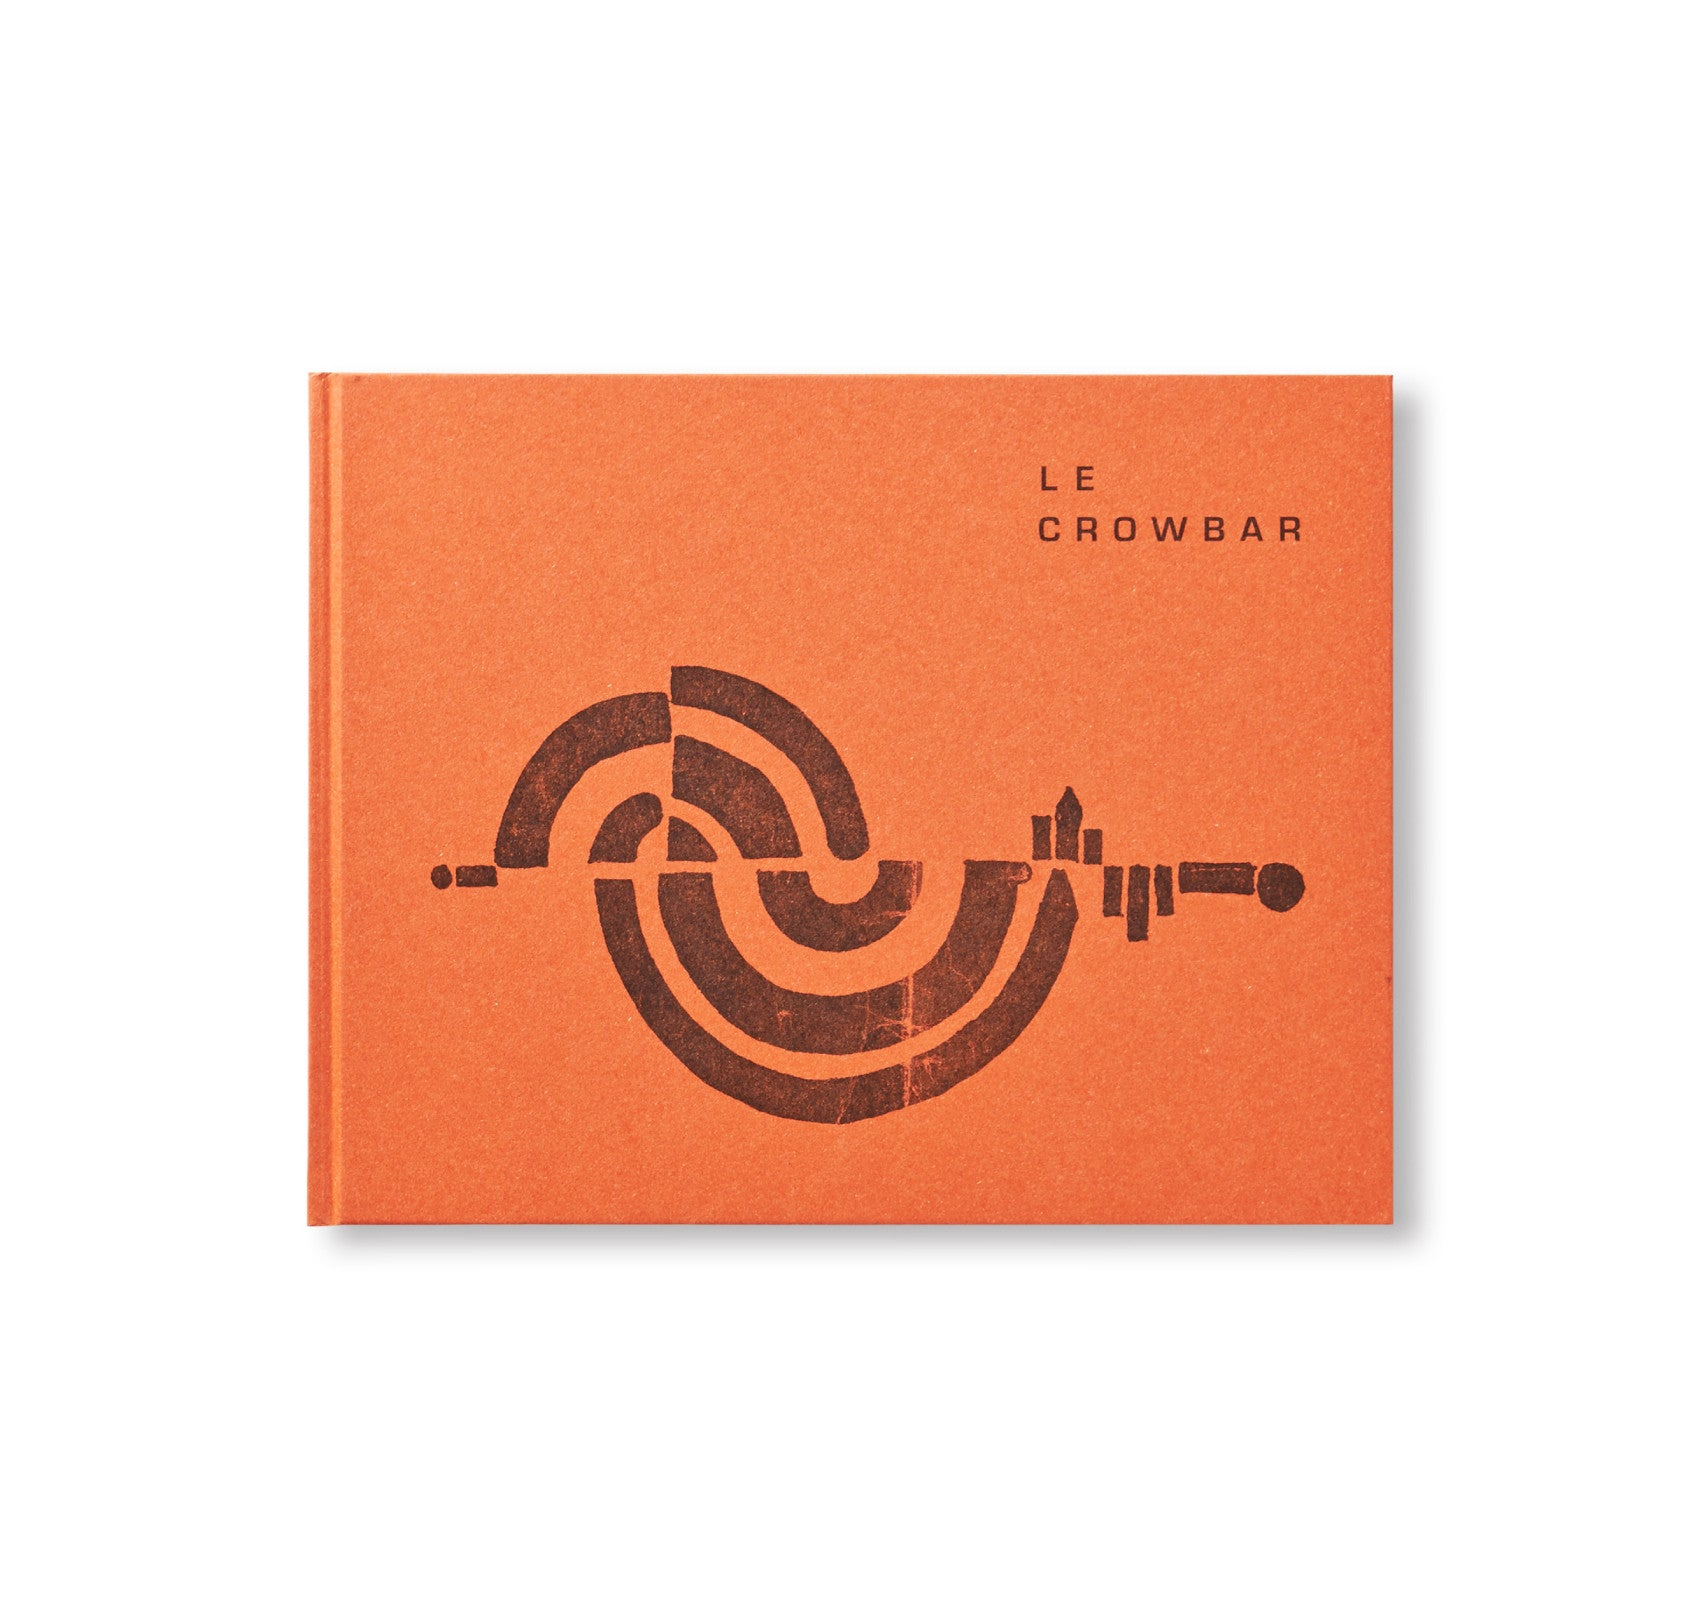 LE CROWBAR by Tom Hunter